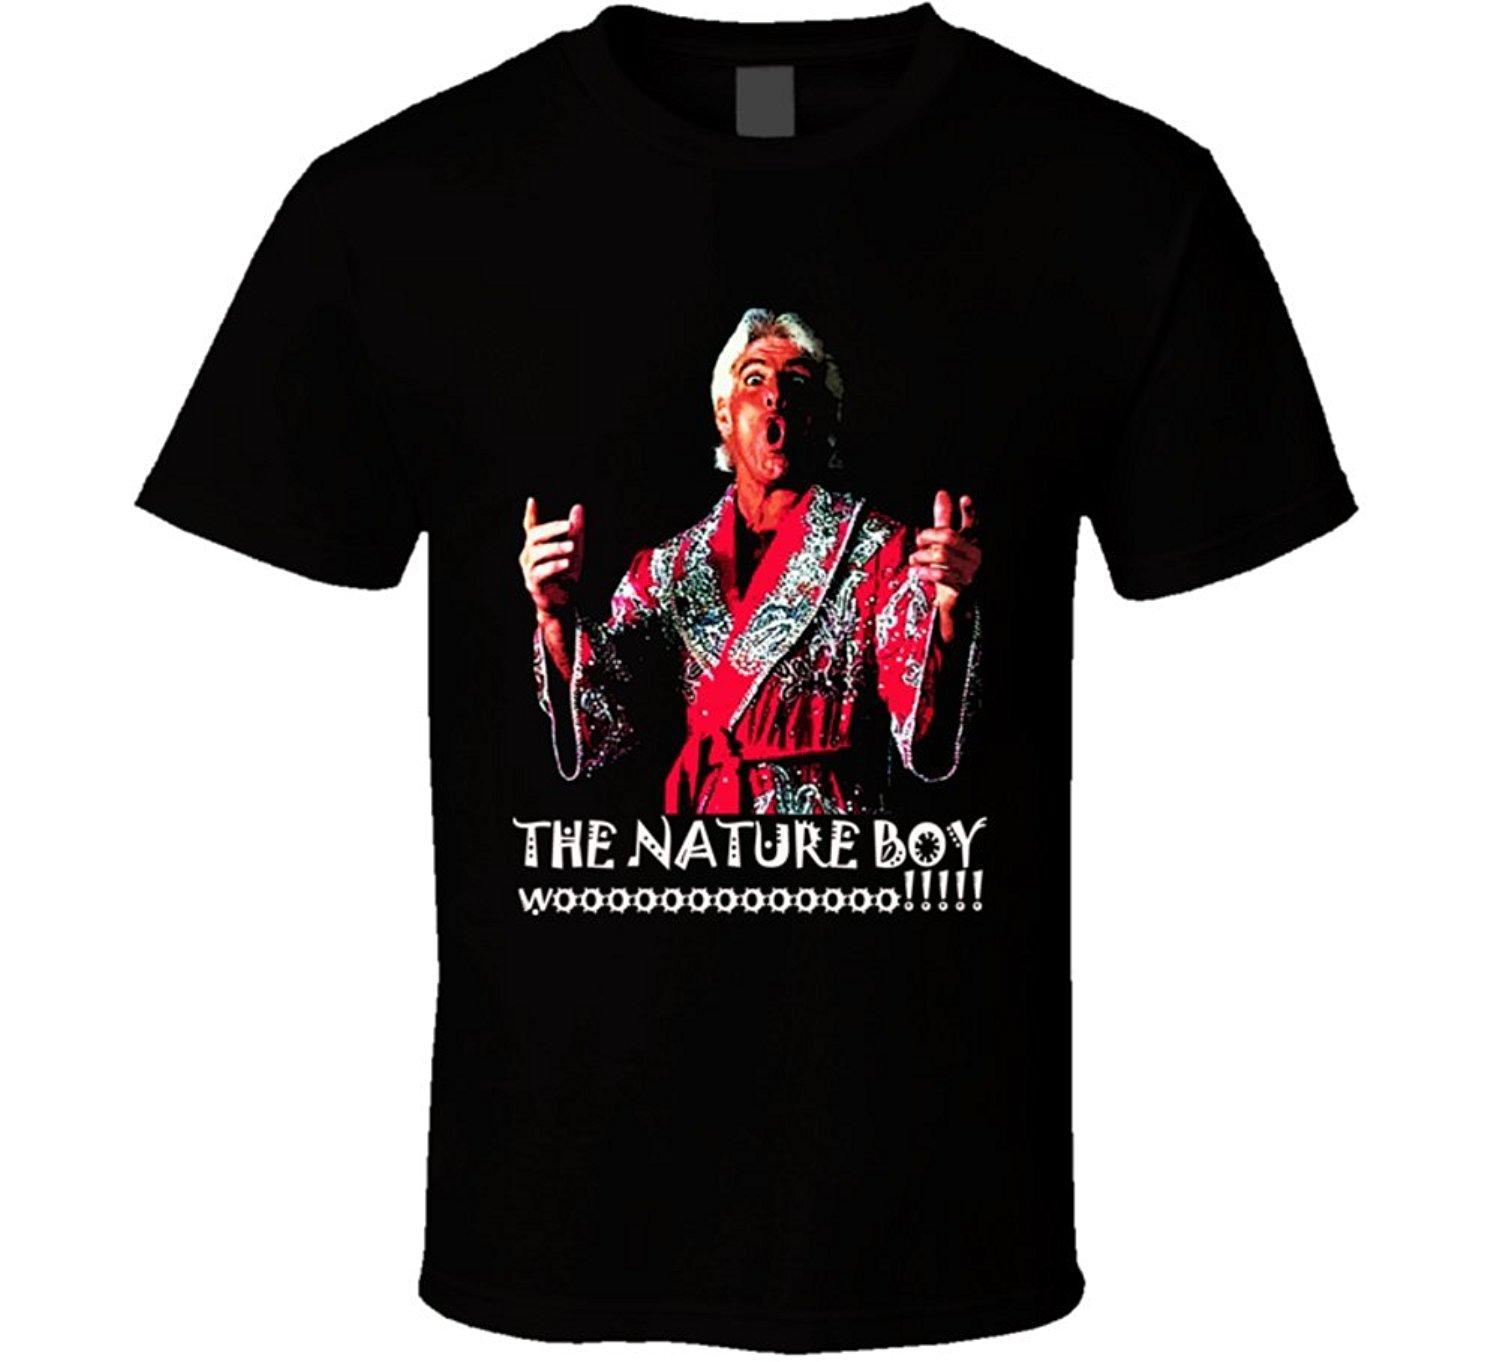 57a5d1831 Rick Flair WOOO Wrestling T Shirt Tee Shirt Design Mens Shirt From  Beidhgate05, $11.01| DHgate.Com